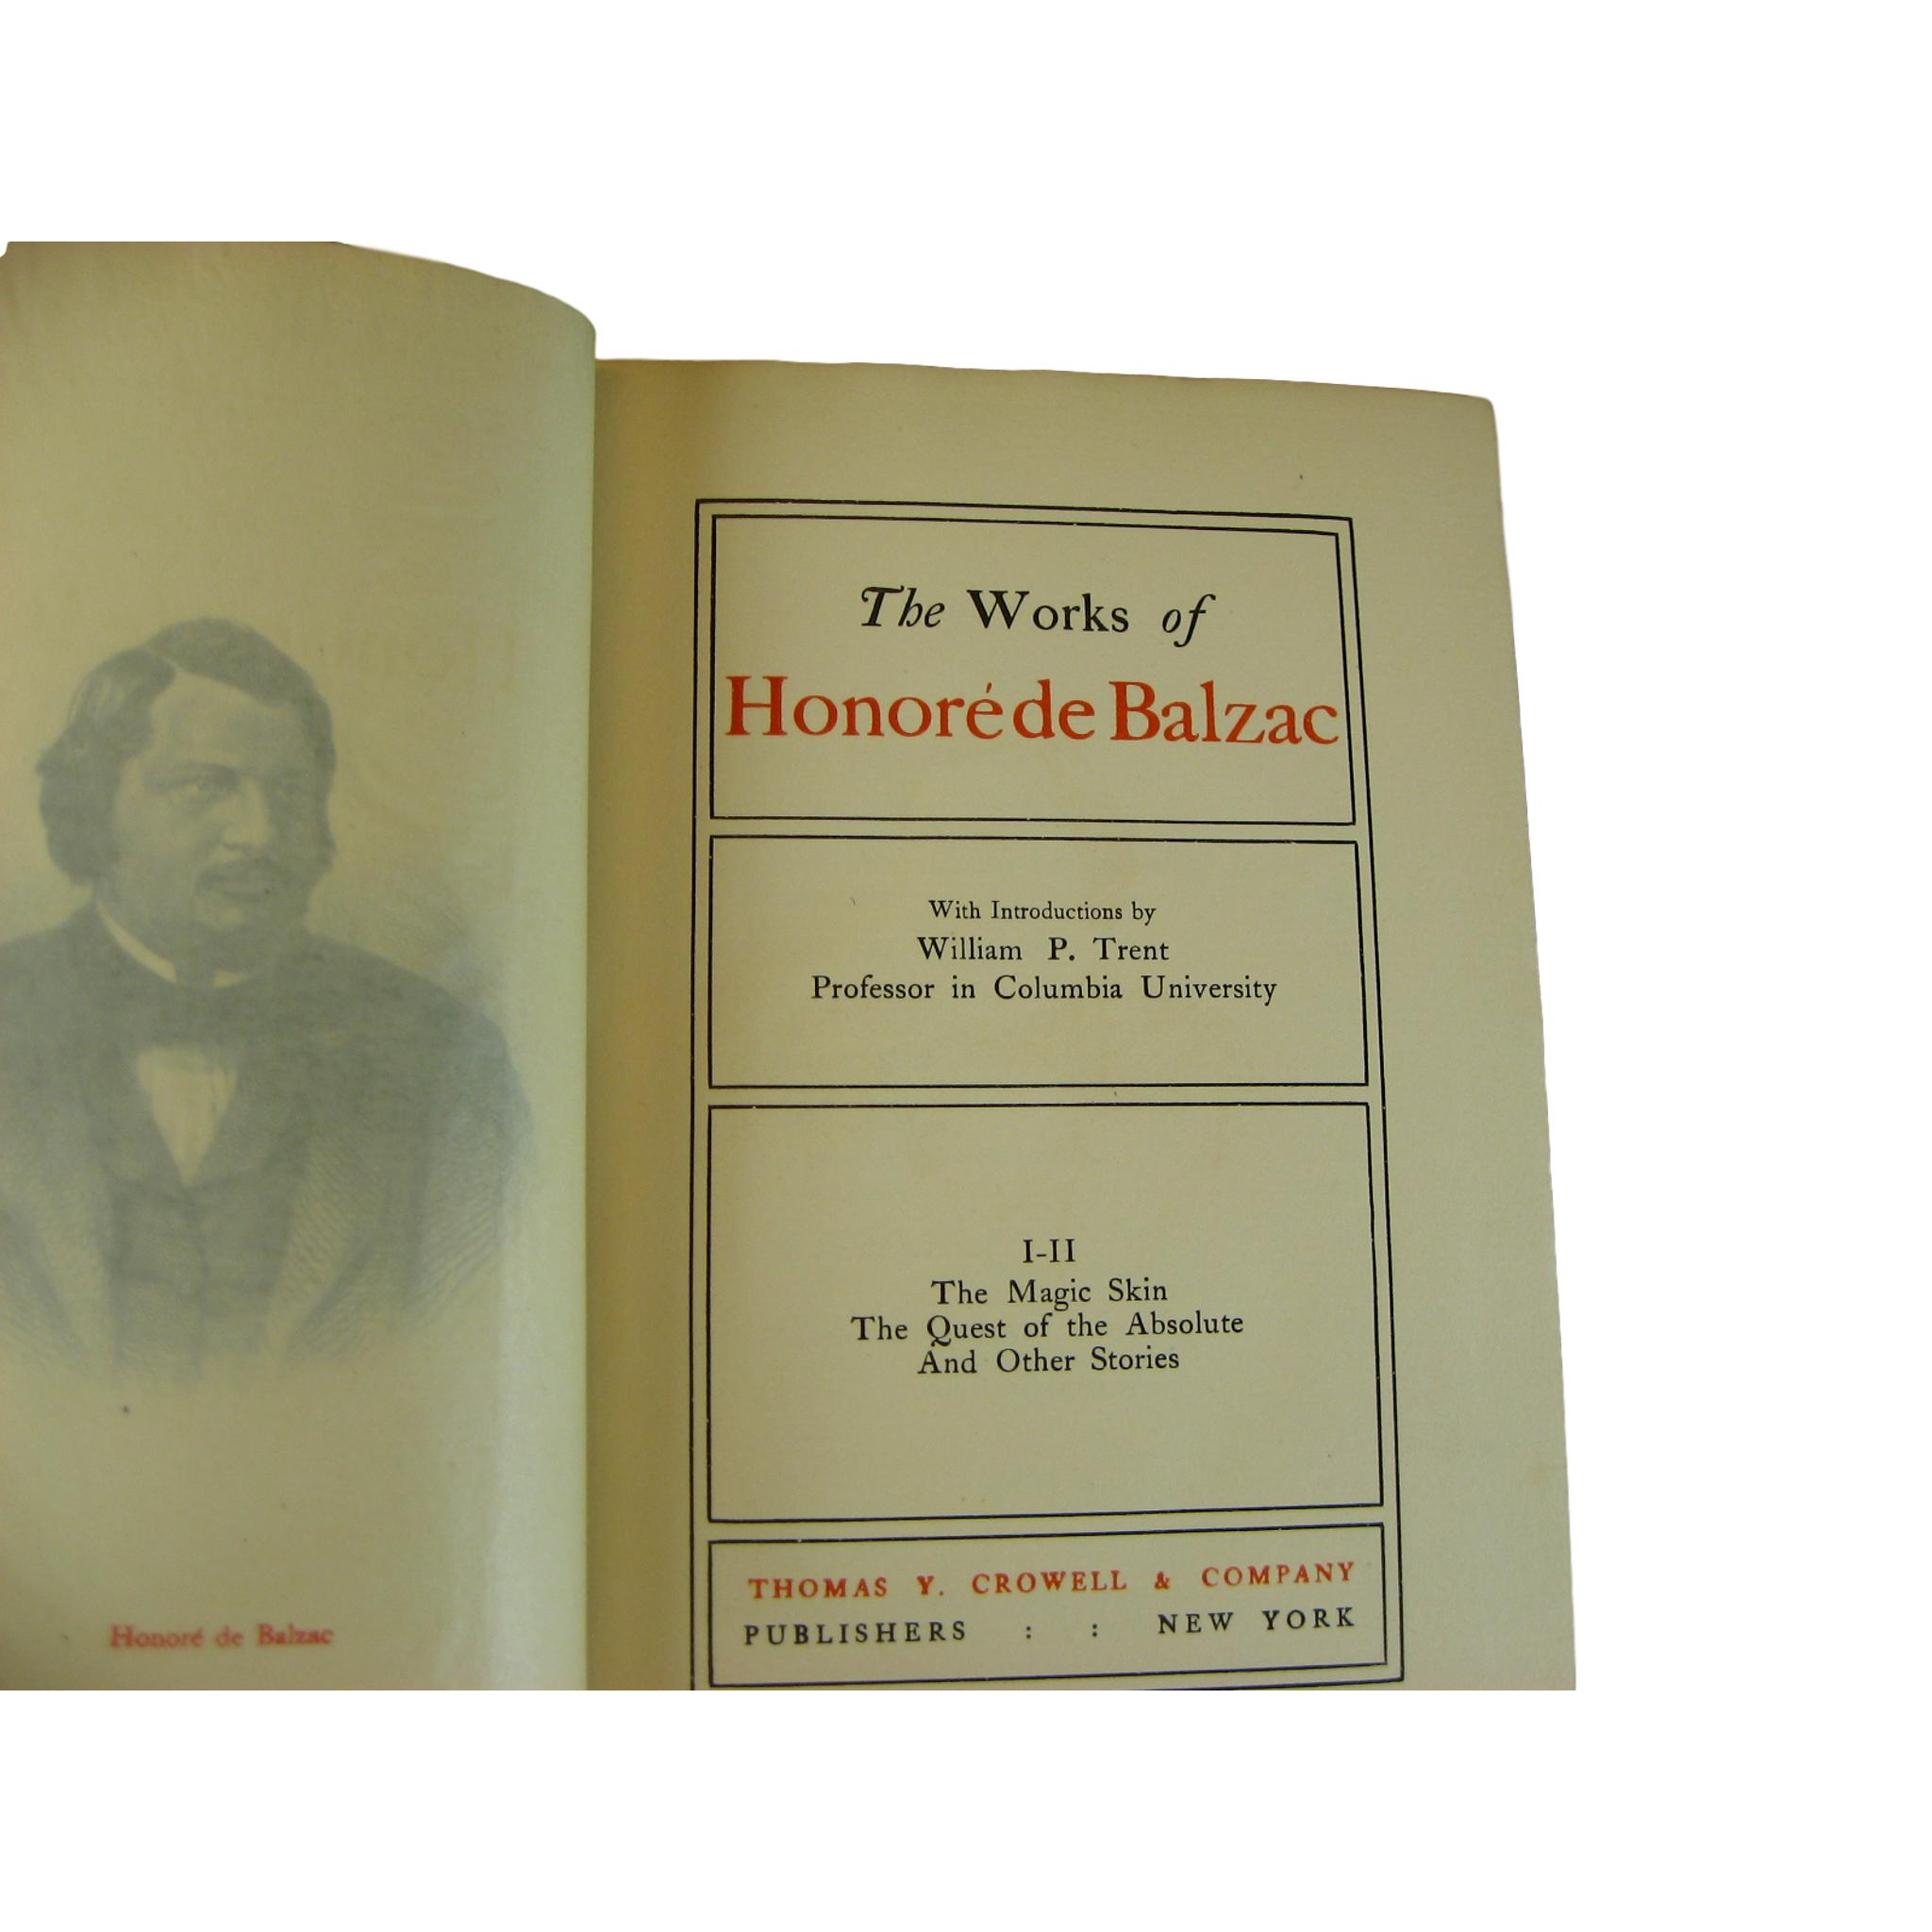 Antique Decorative Books of the Works of Honoré de Balzac, S/6 - Decades of Vintage